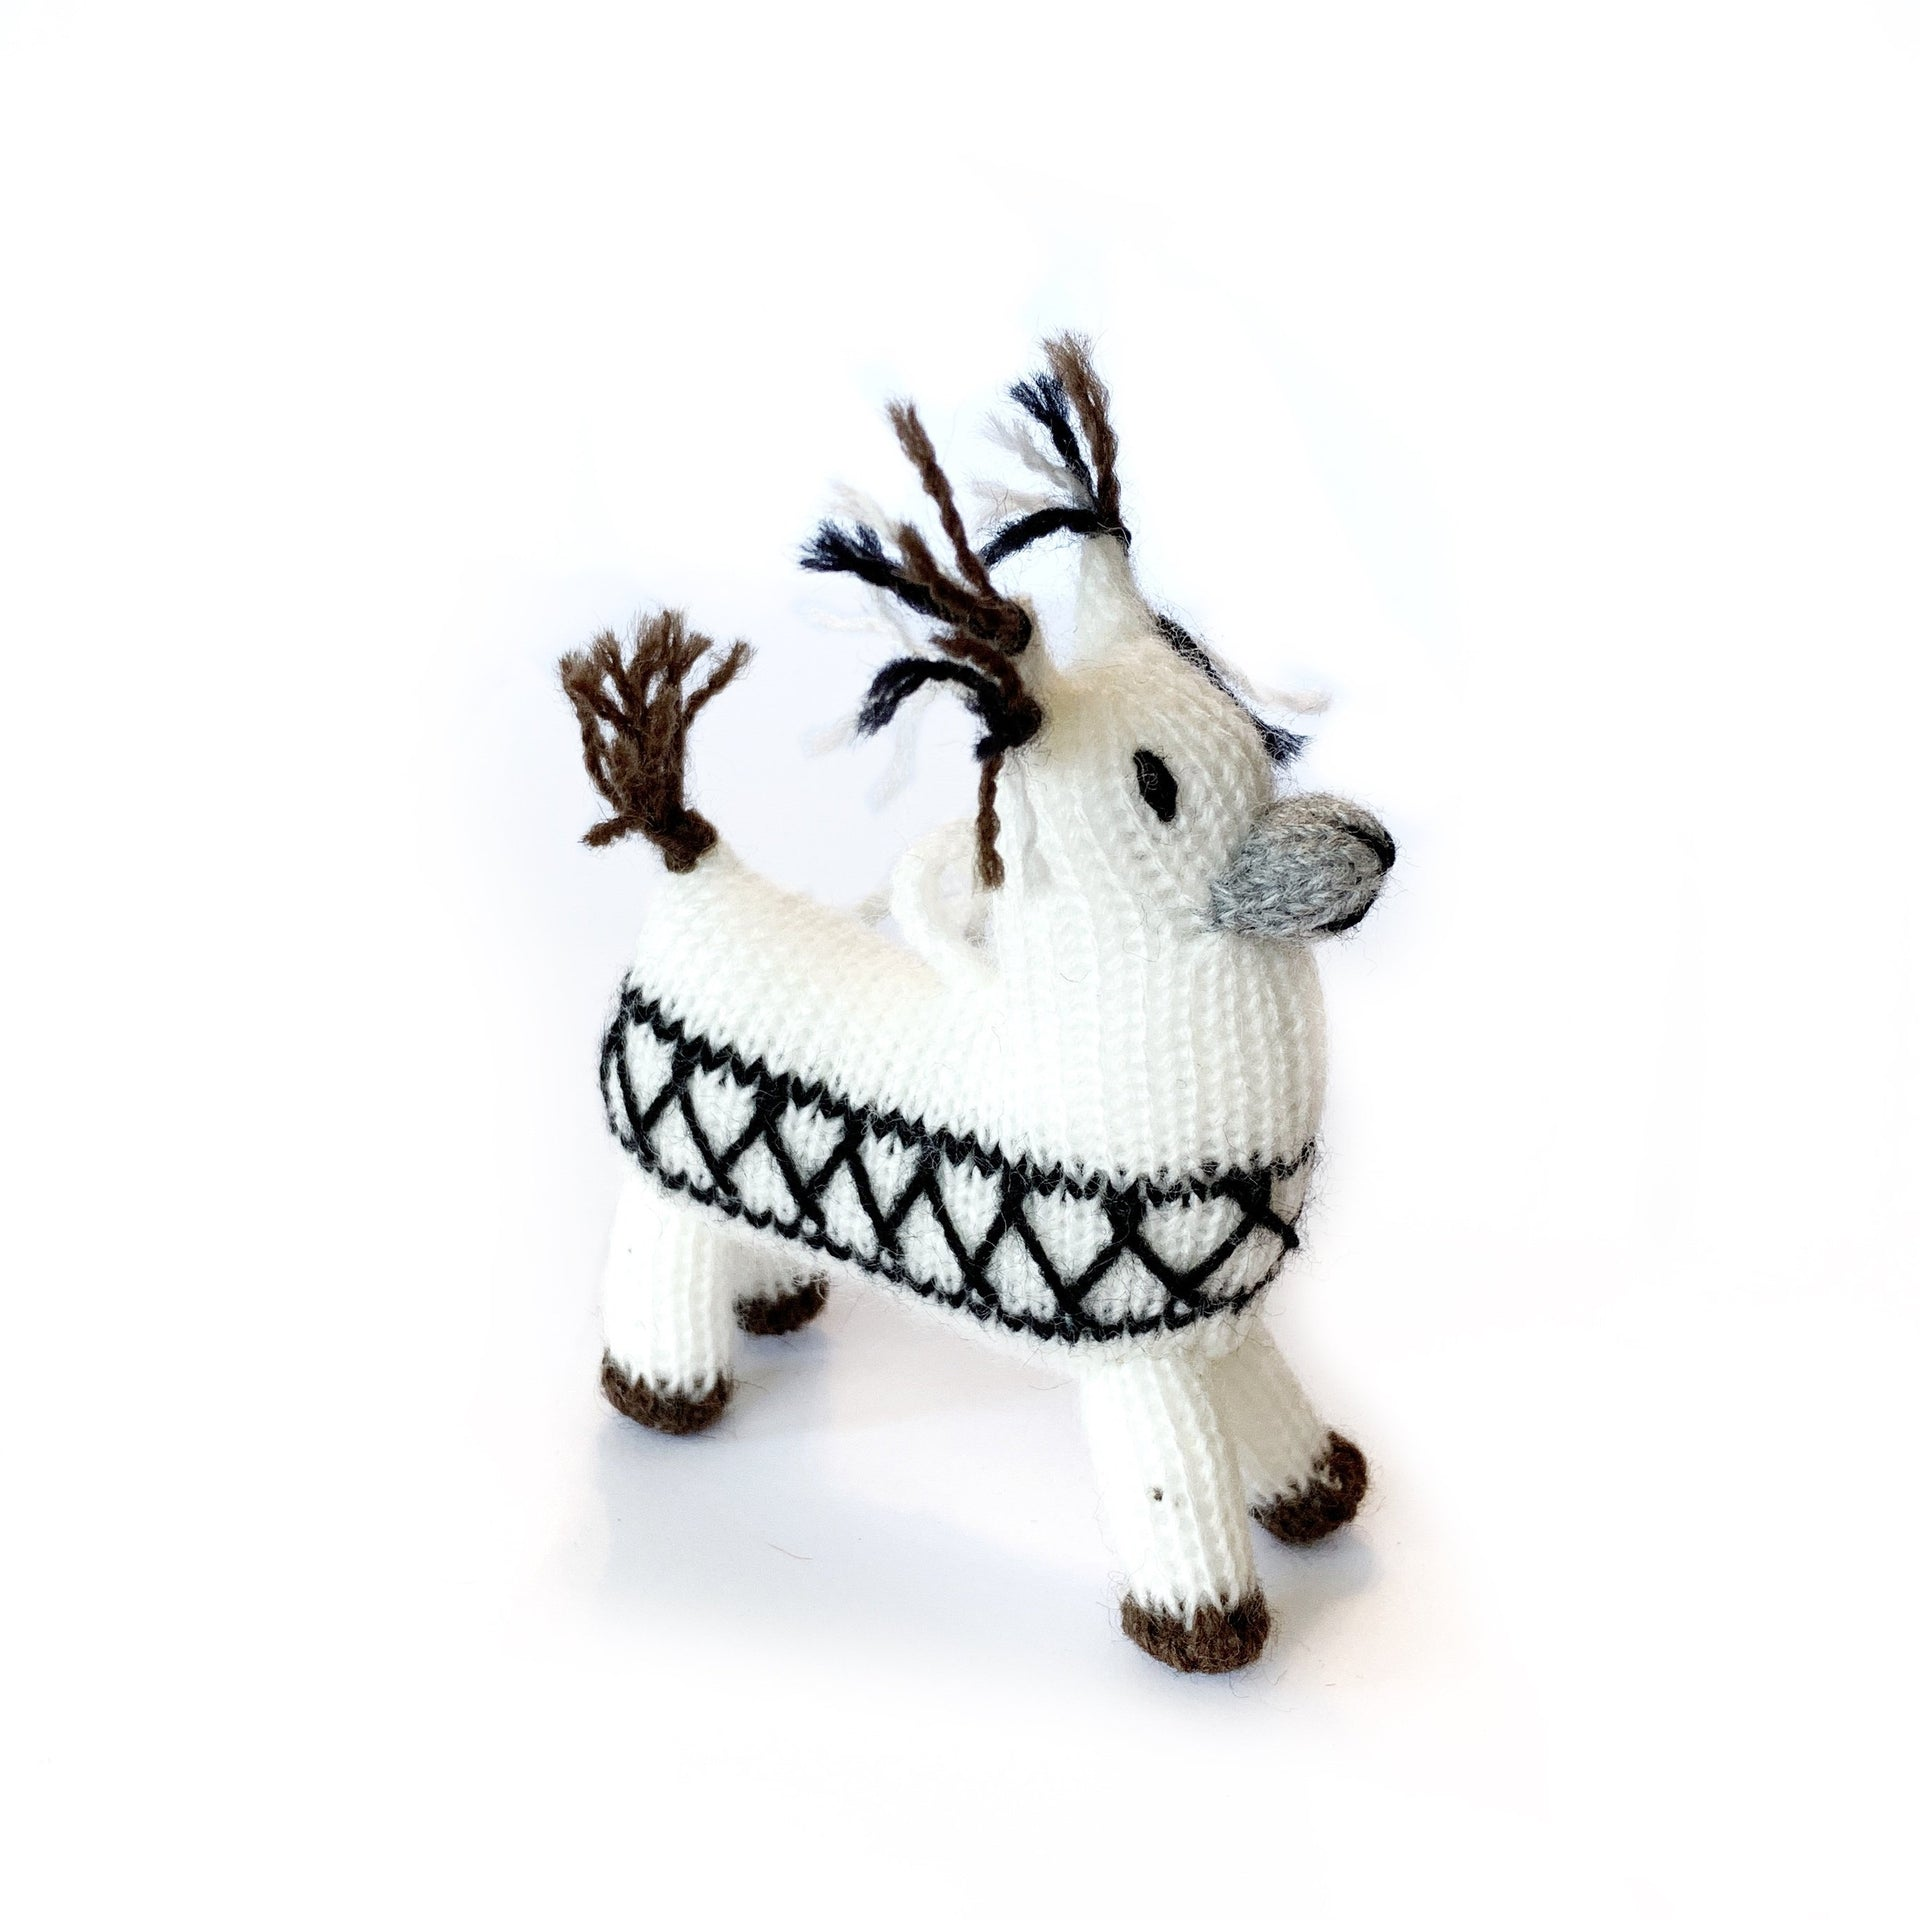 Knit Wool Llama Christmas Ornament Handmade Peru